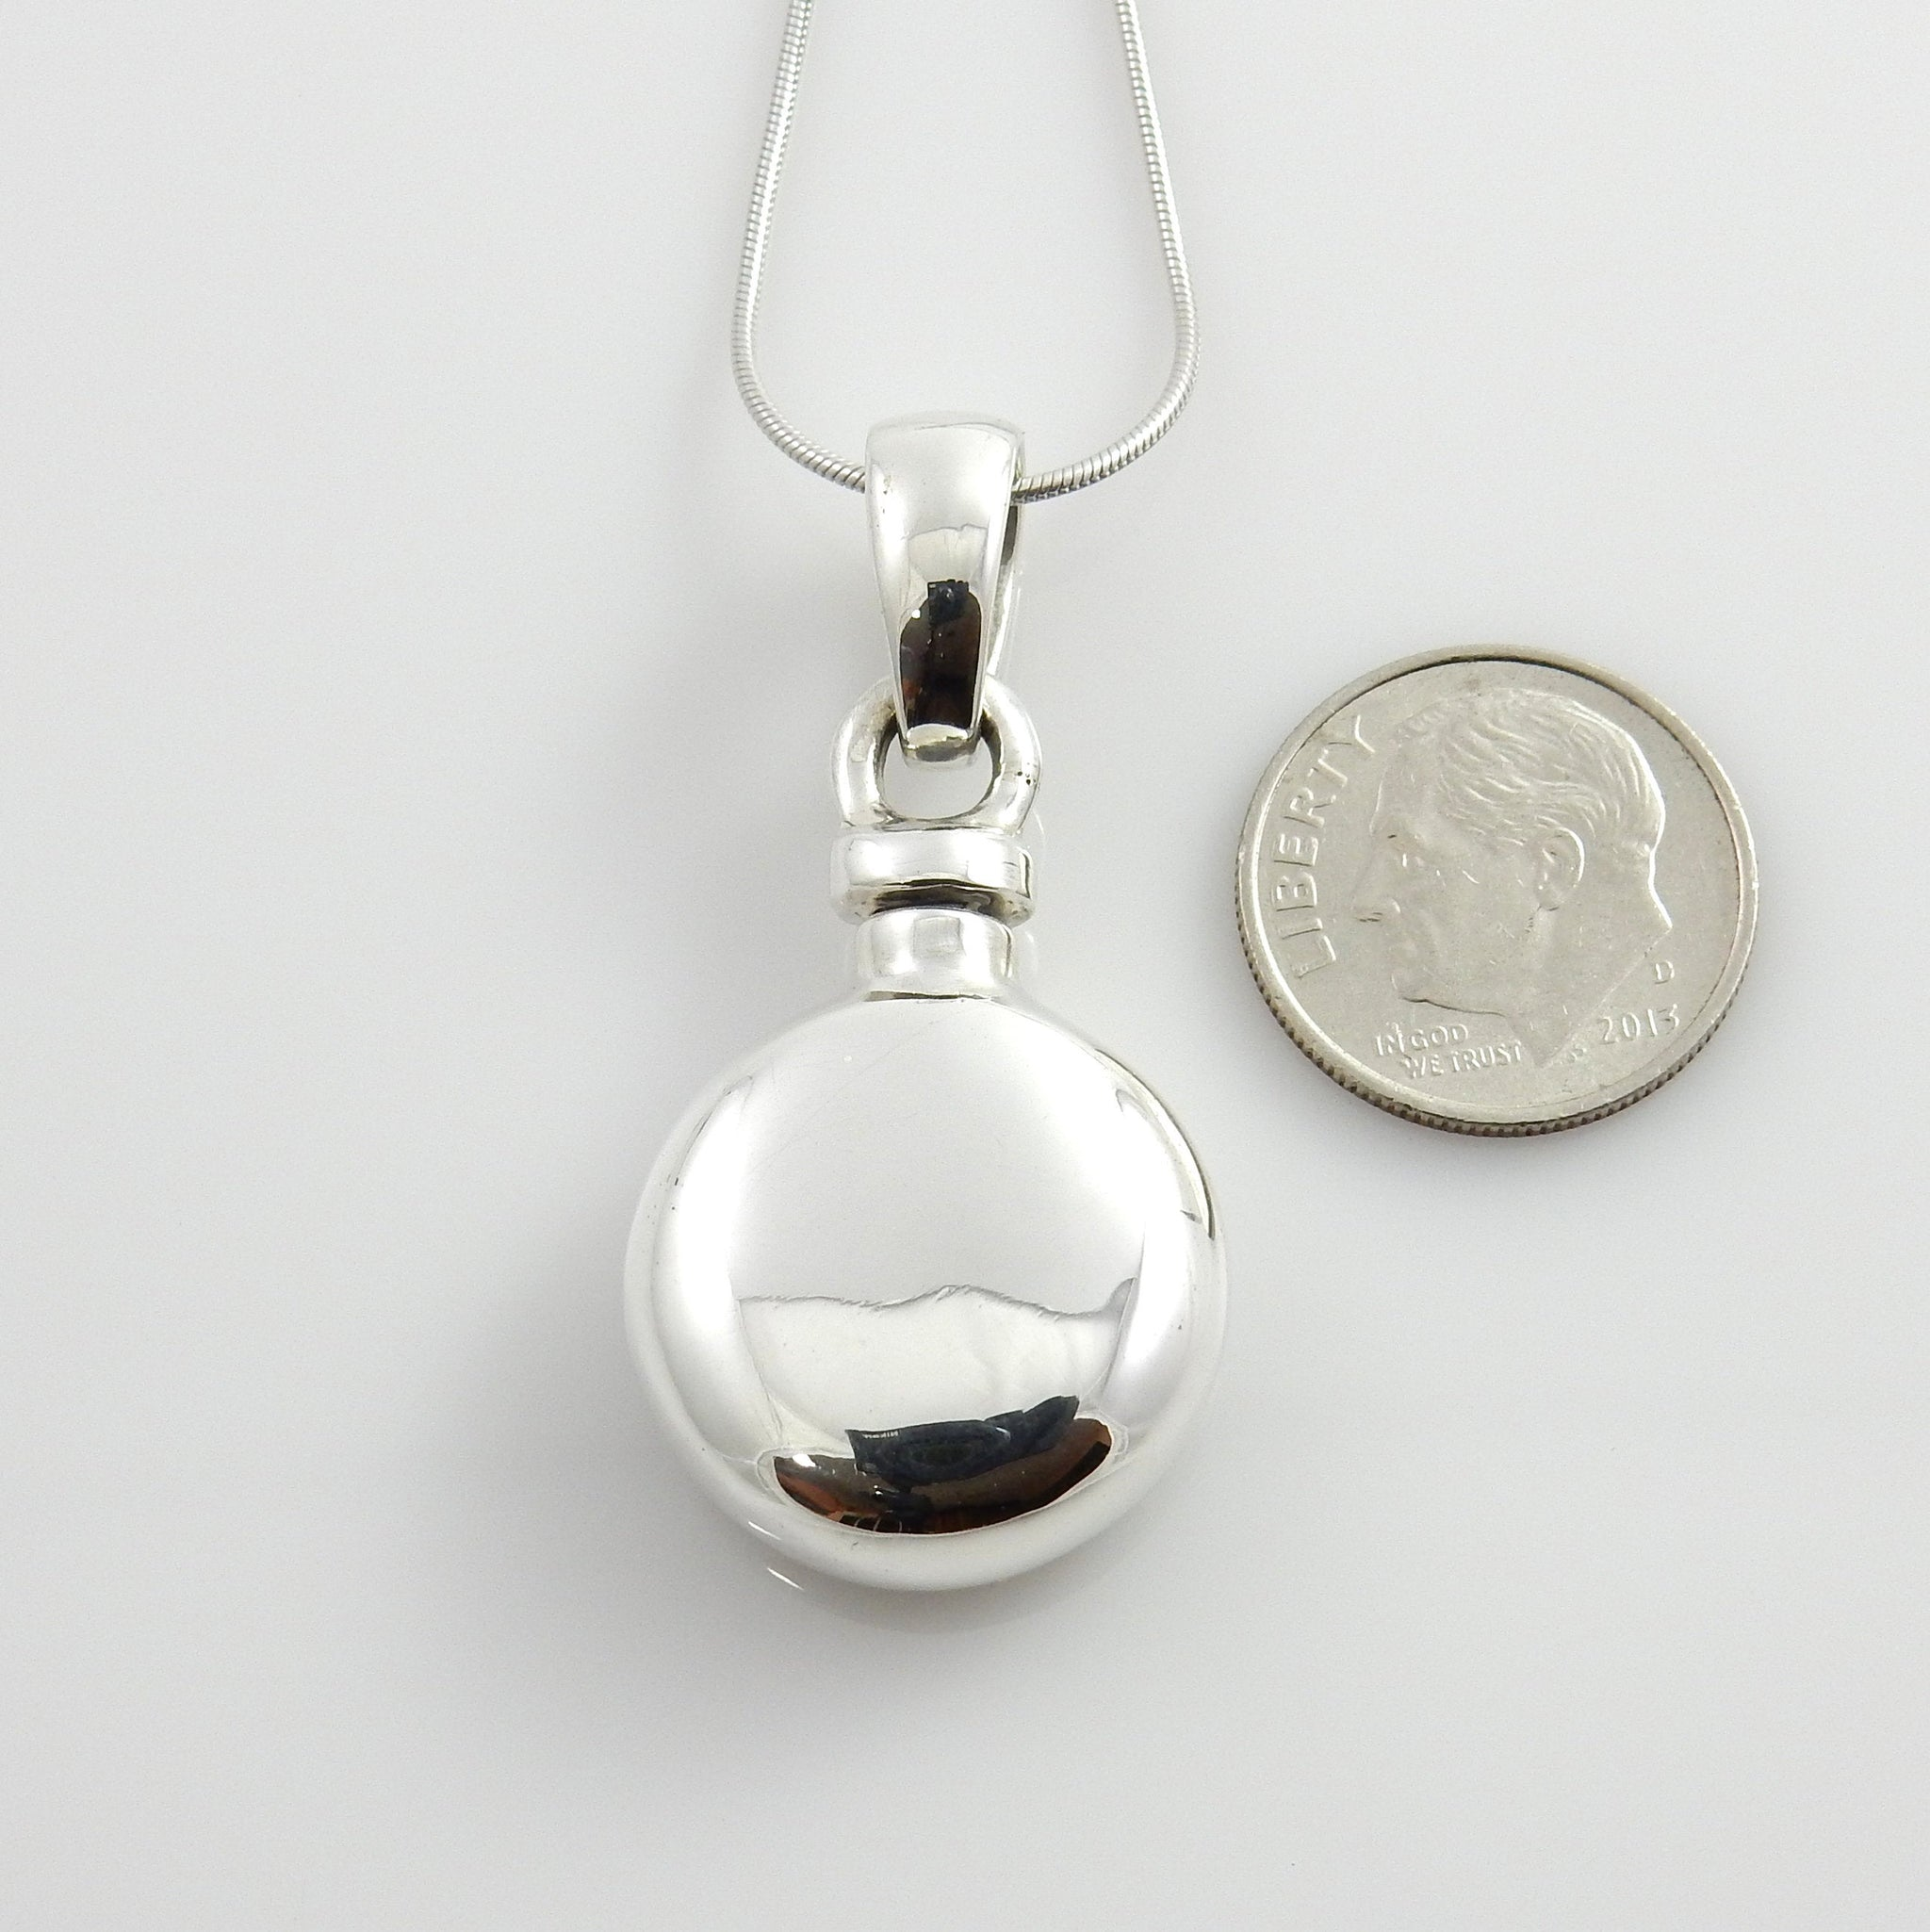 Unique Sterling Silver Handcrafted Urn Pendant